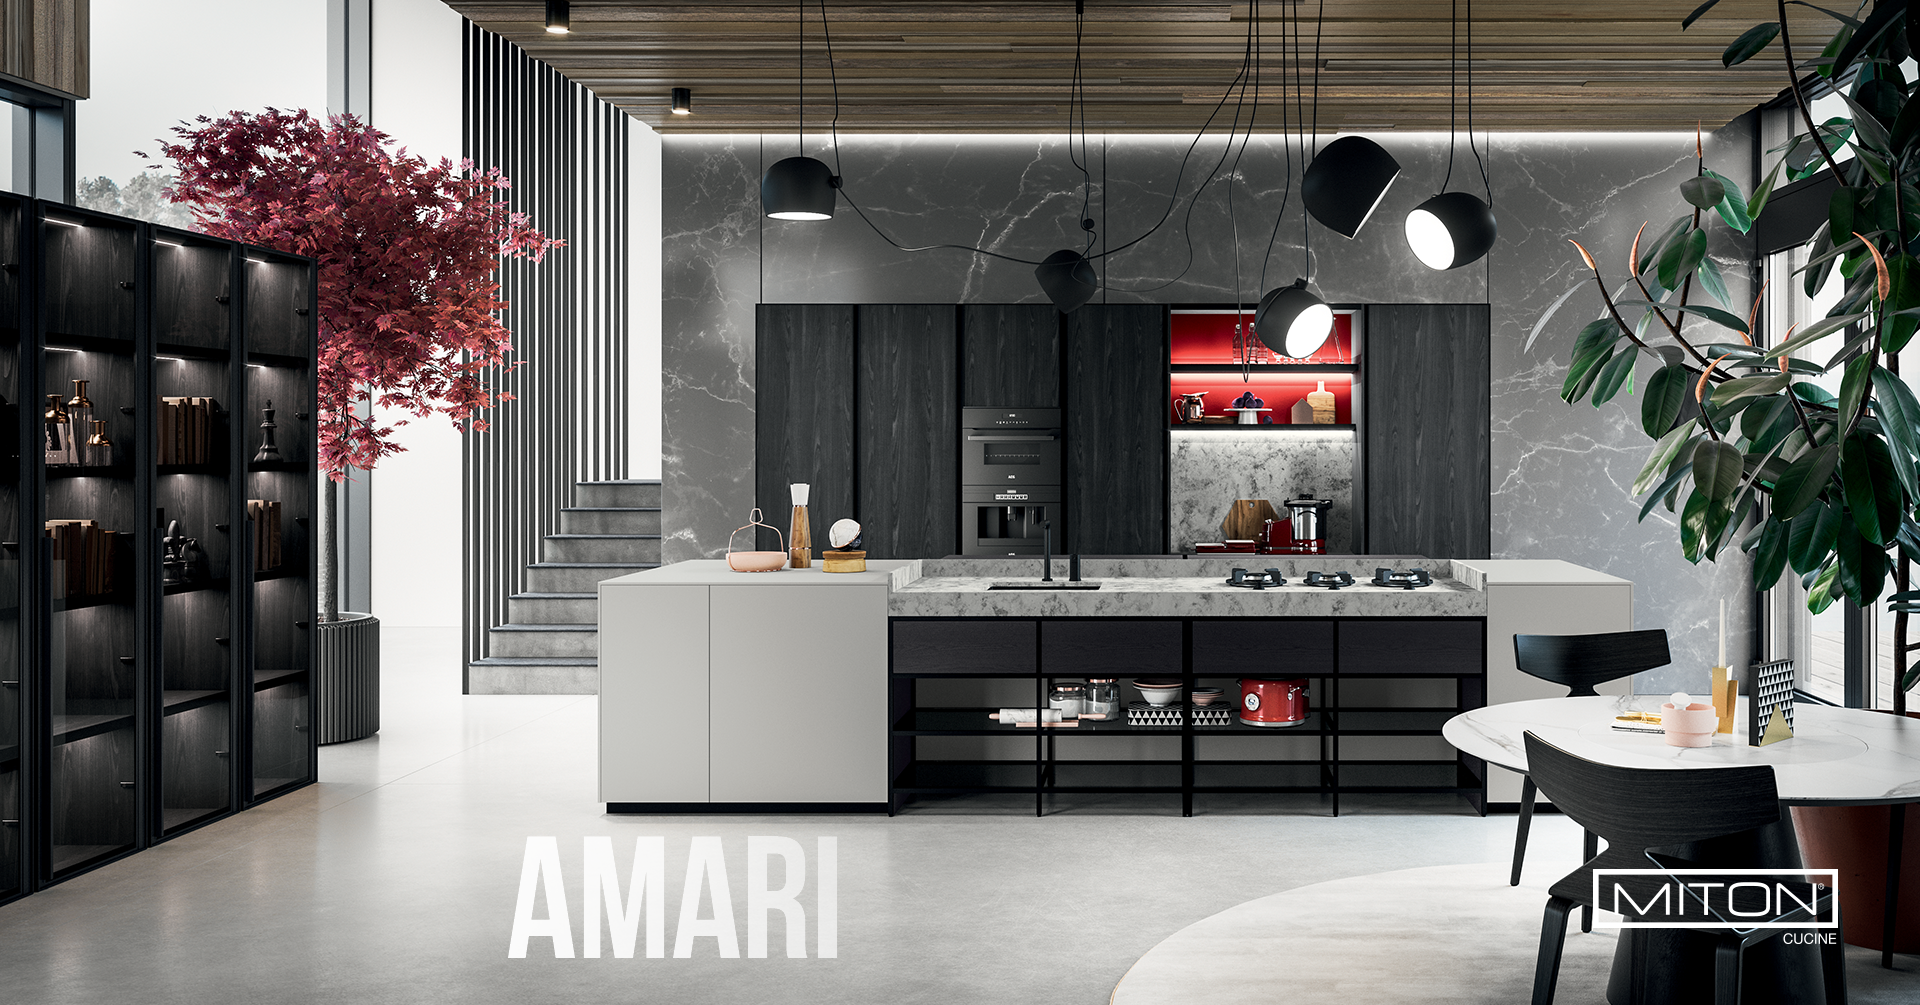 Amari Miton Cucine Made In